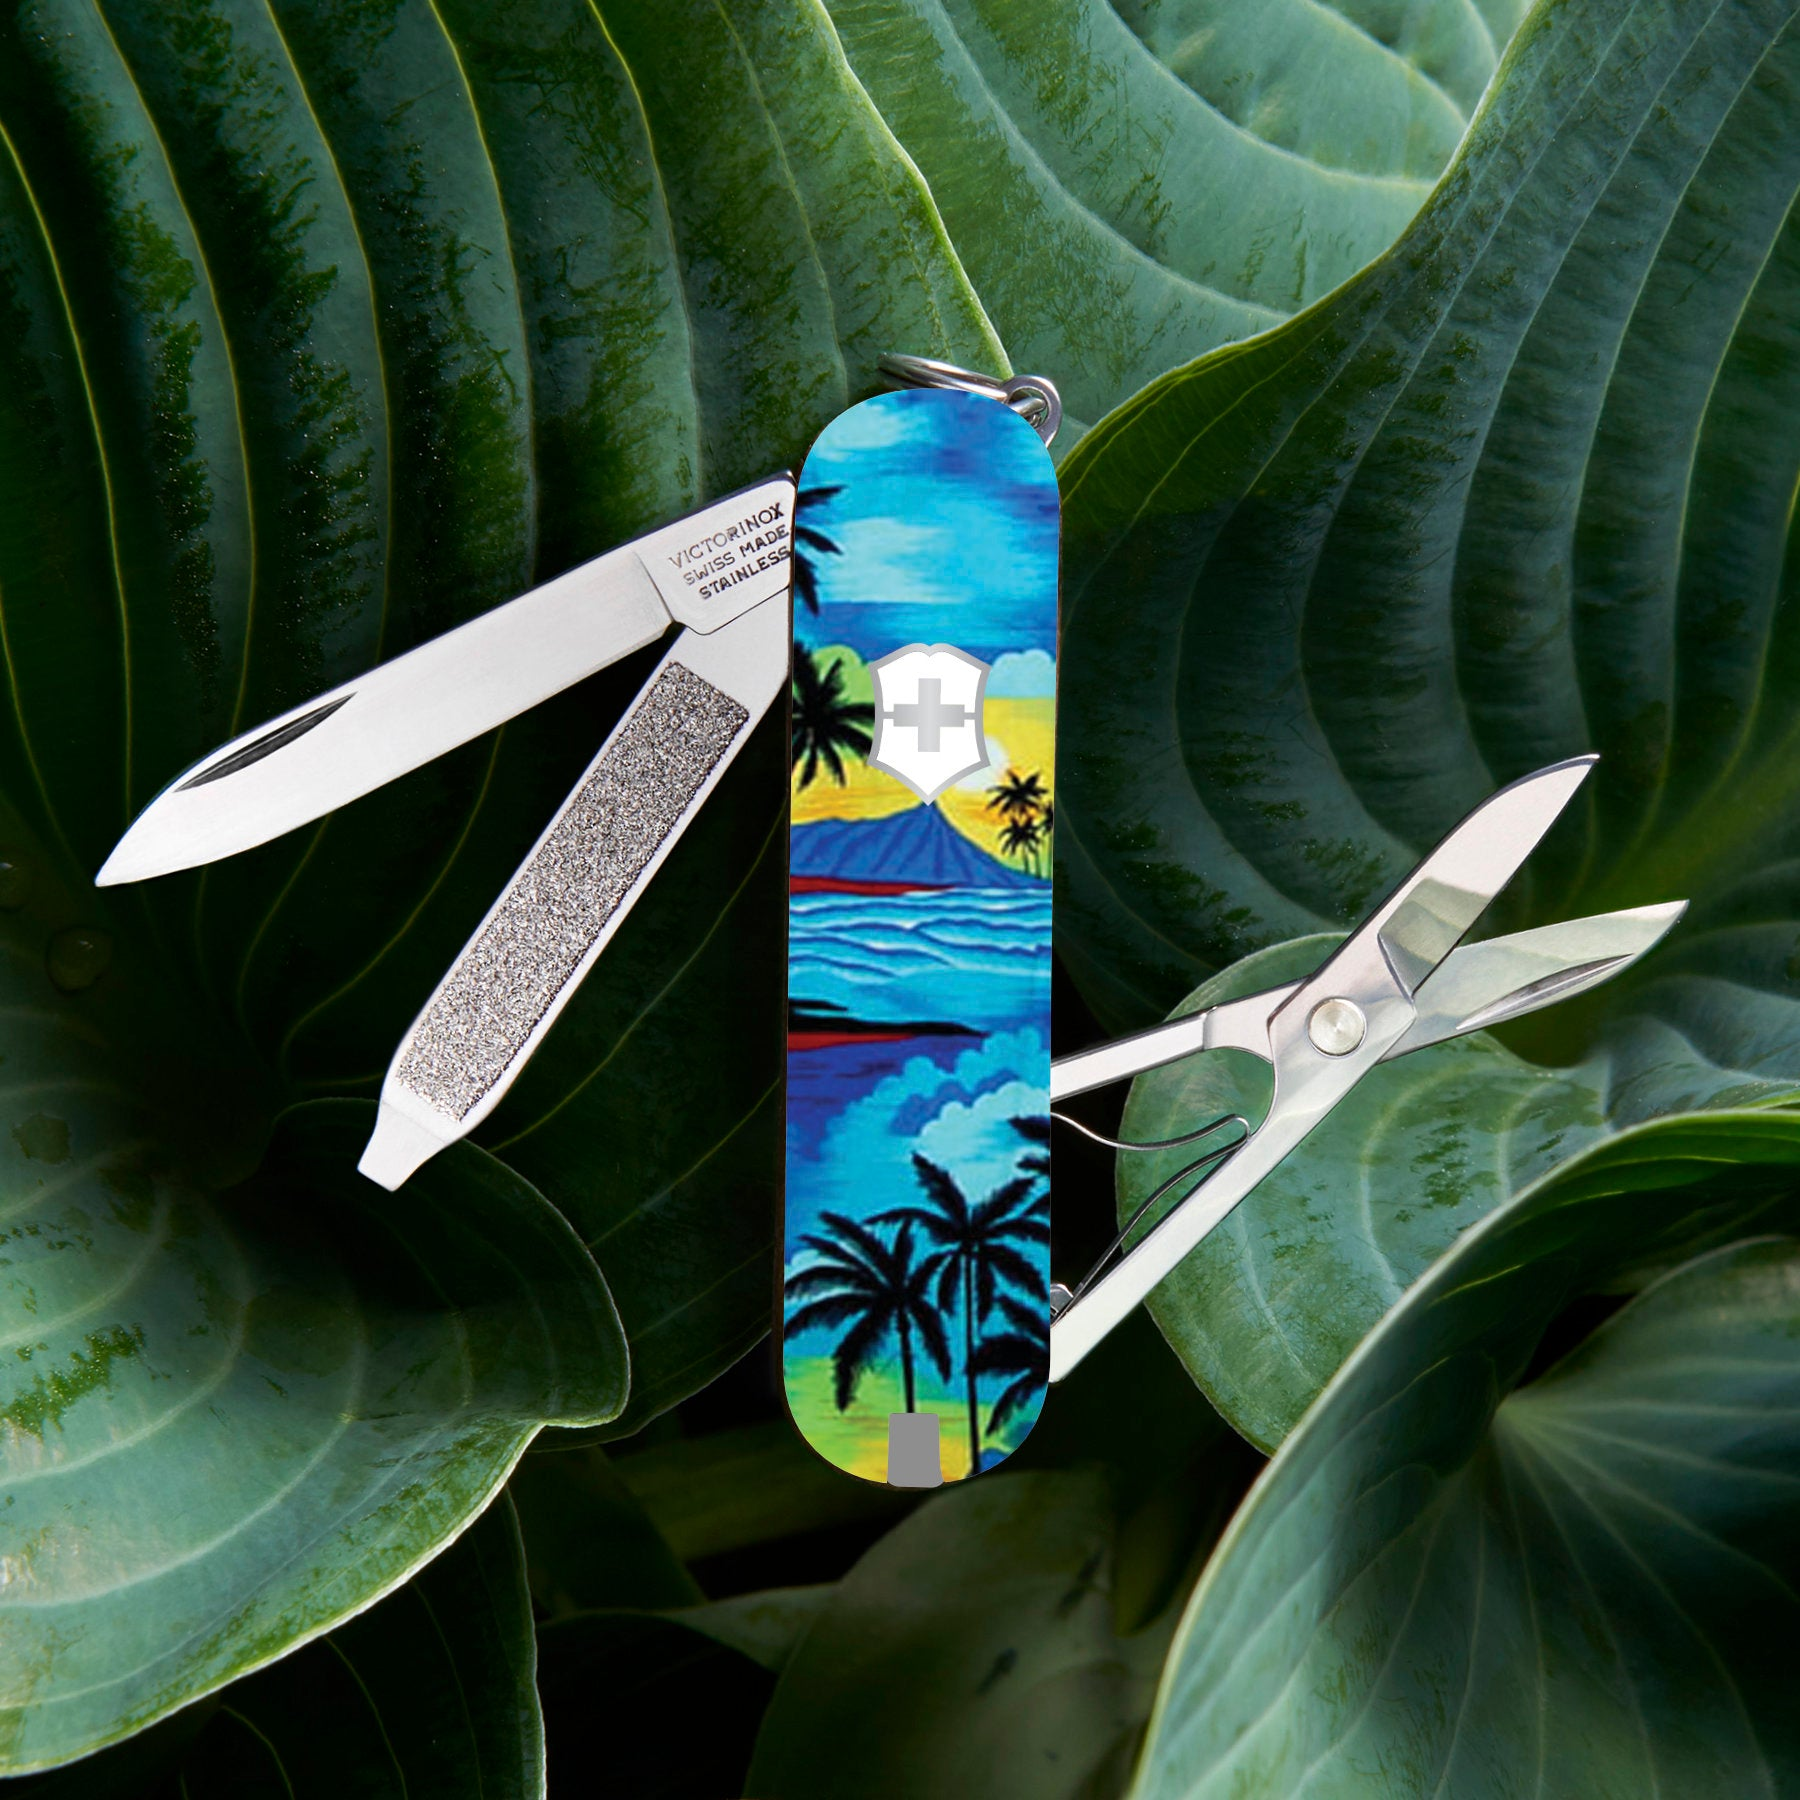 Keychain-size Exclusive Victorinox Swiss Army Knives by Swiss Knife Shop